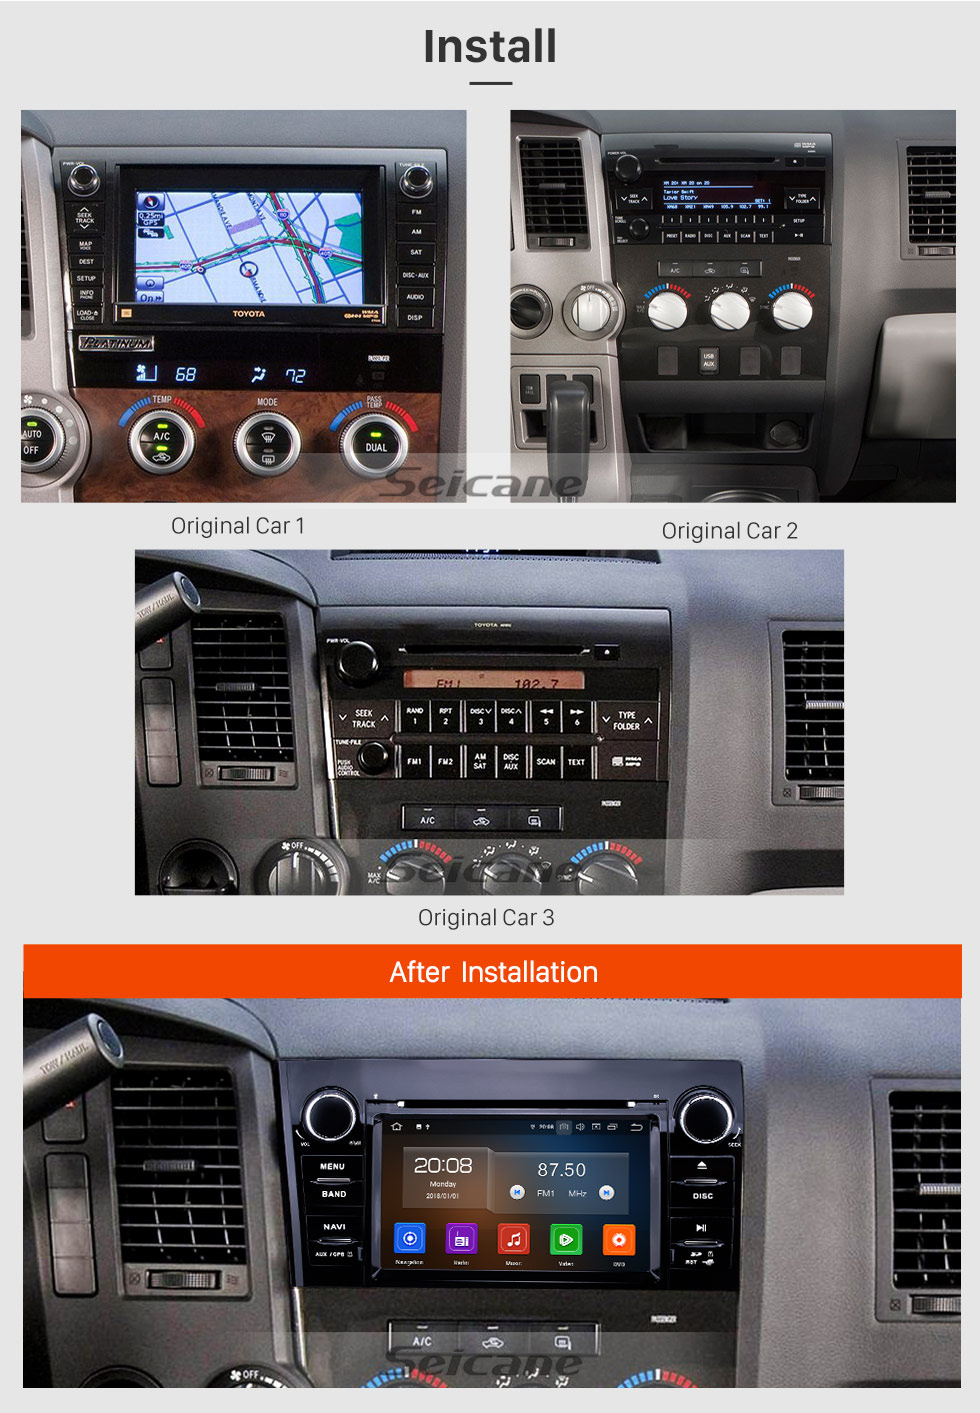 Seicane 7 inch Android 10.0 GPS Navigation Radio for 2008-2015 Toyota Sequoia/2006-2013 Tundra Bluetooth HD Touchscreen Carplay USB AUX support DVR 1080P Video